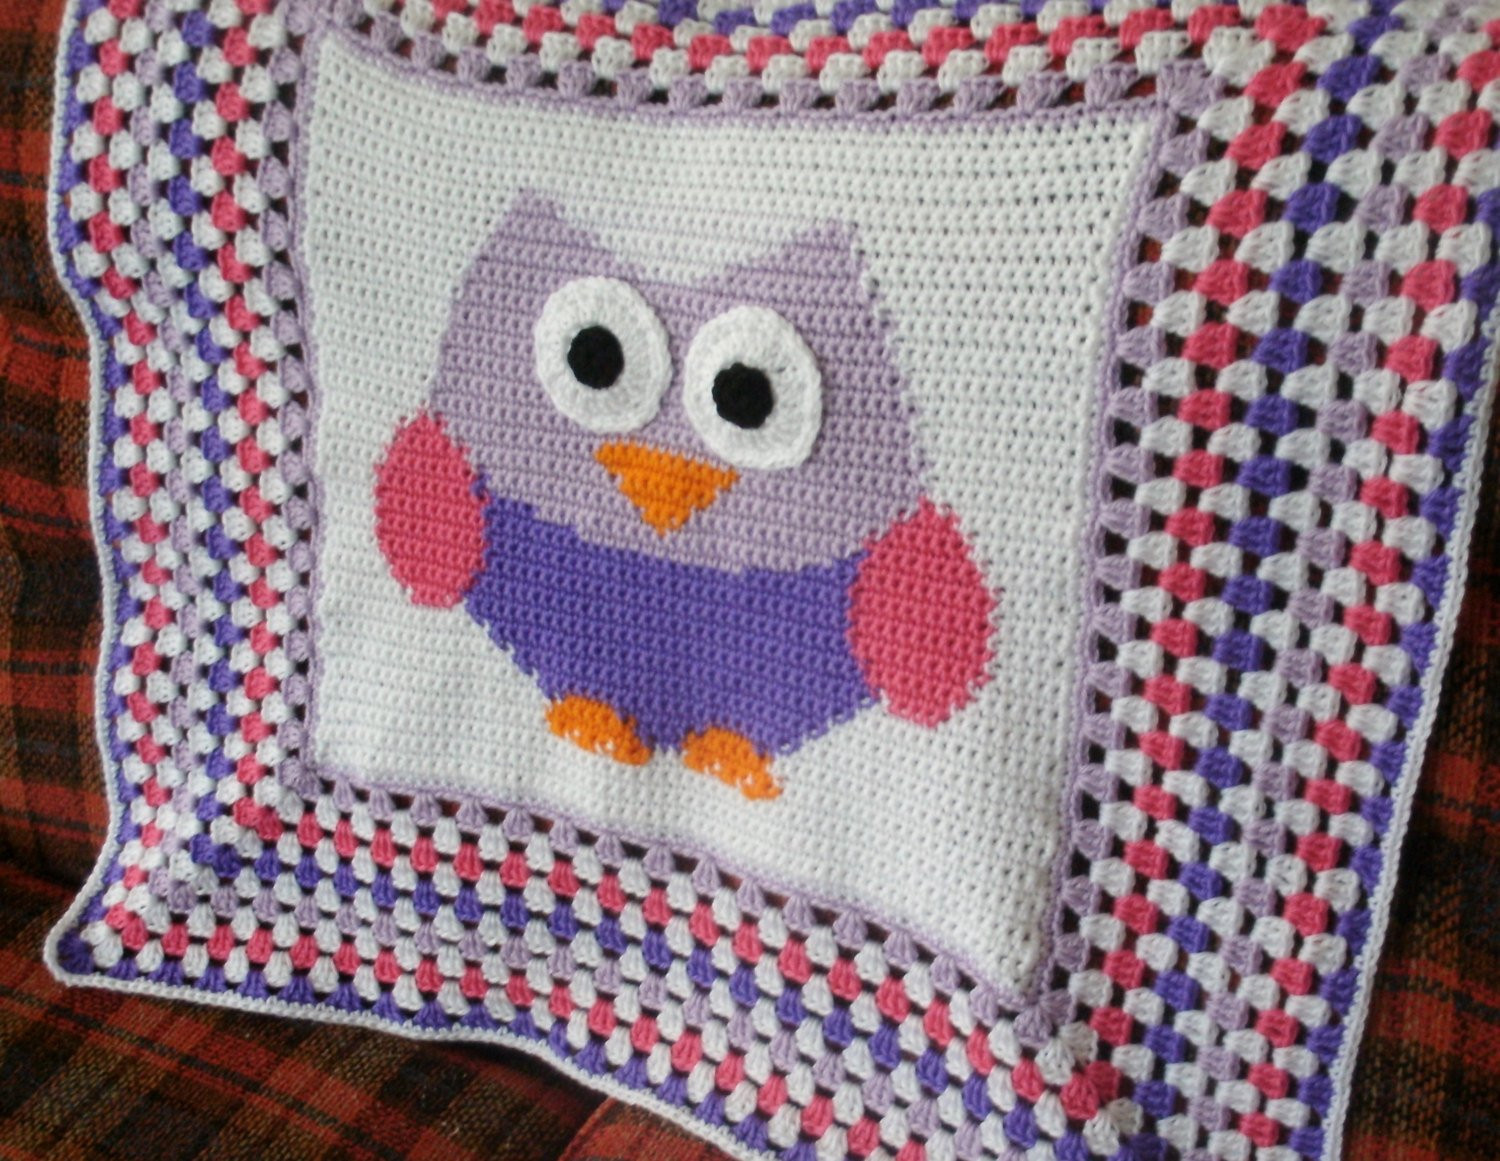 Crochet Owl Blanket Pattern Awesome Crochet Owl Baby Afghan Granny Square by Prettyponchosandmore Of Luxury 42 Models Crochet Owl Blanket Pattern